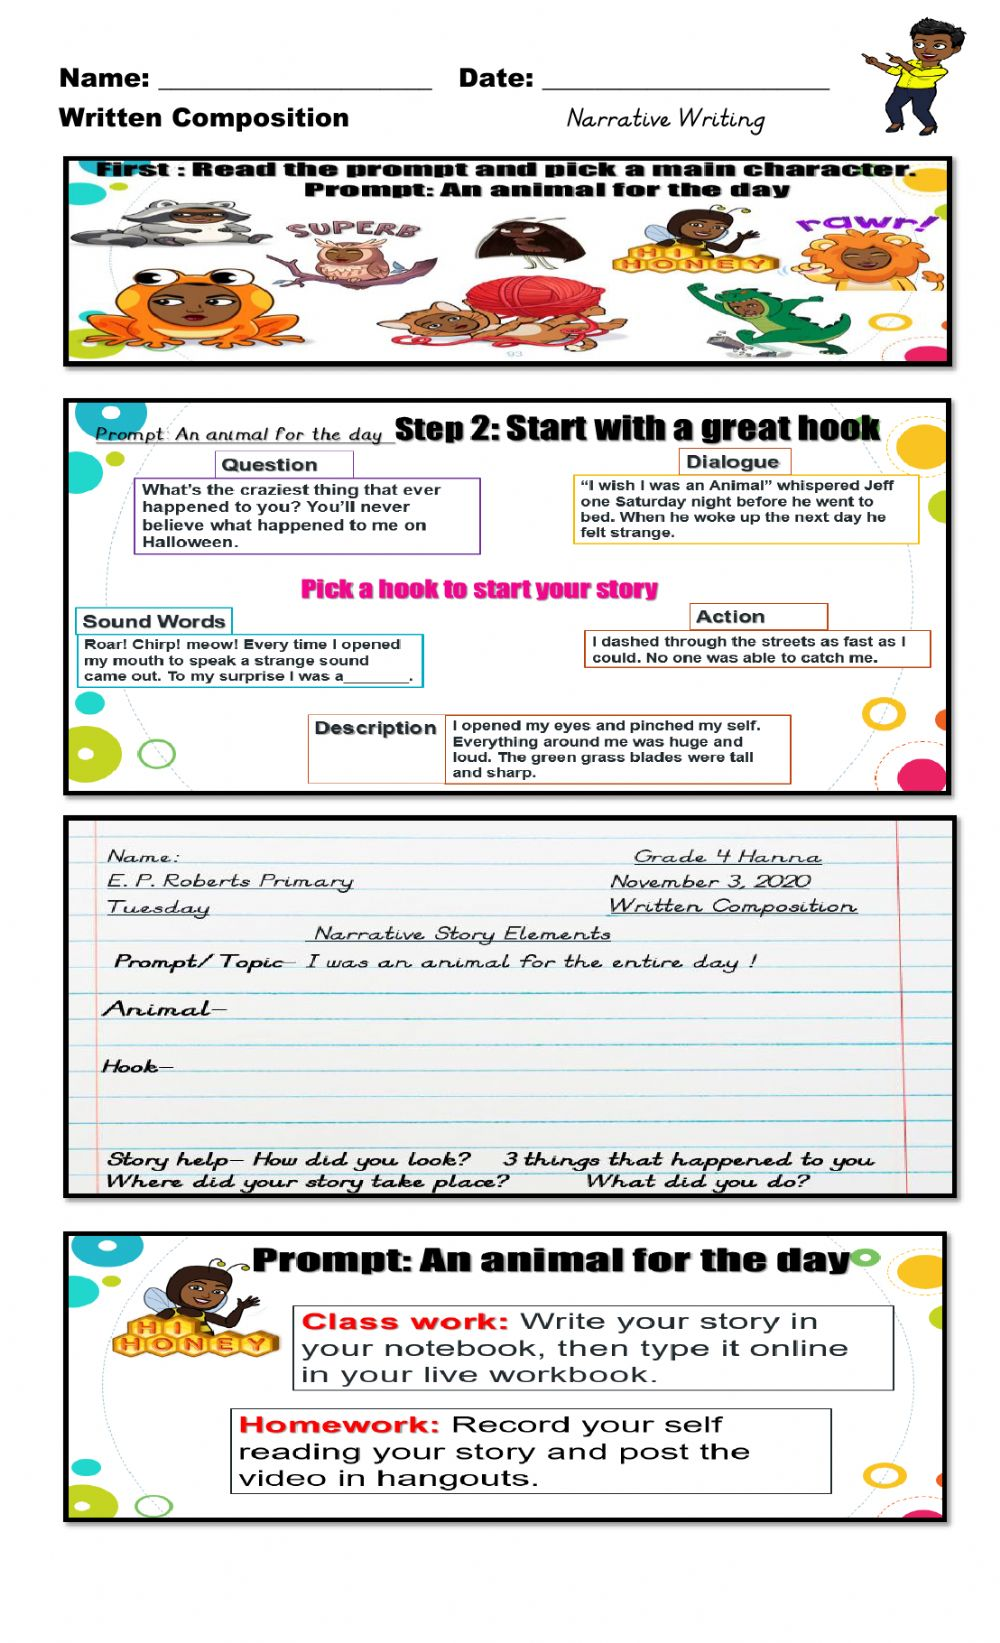 hight resolution of Narrative Writing: You are an animal for the Day worksheet